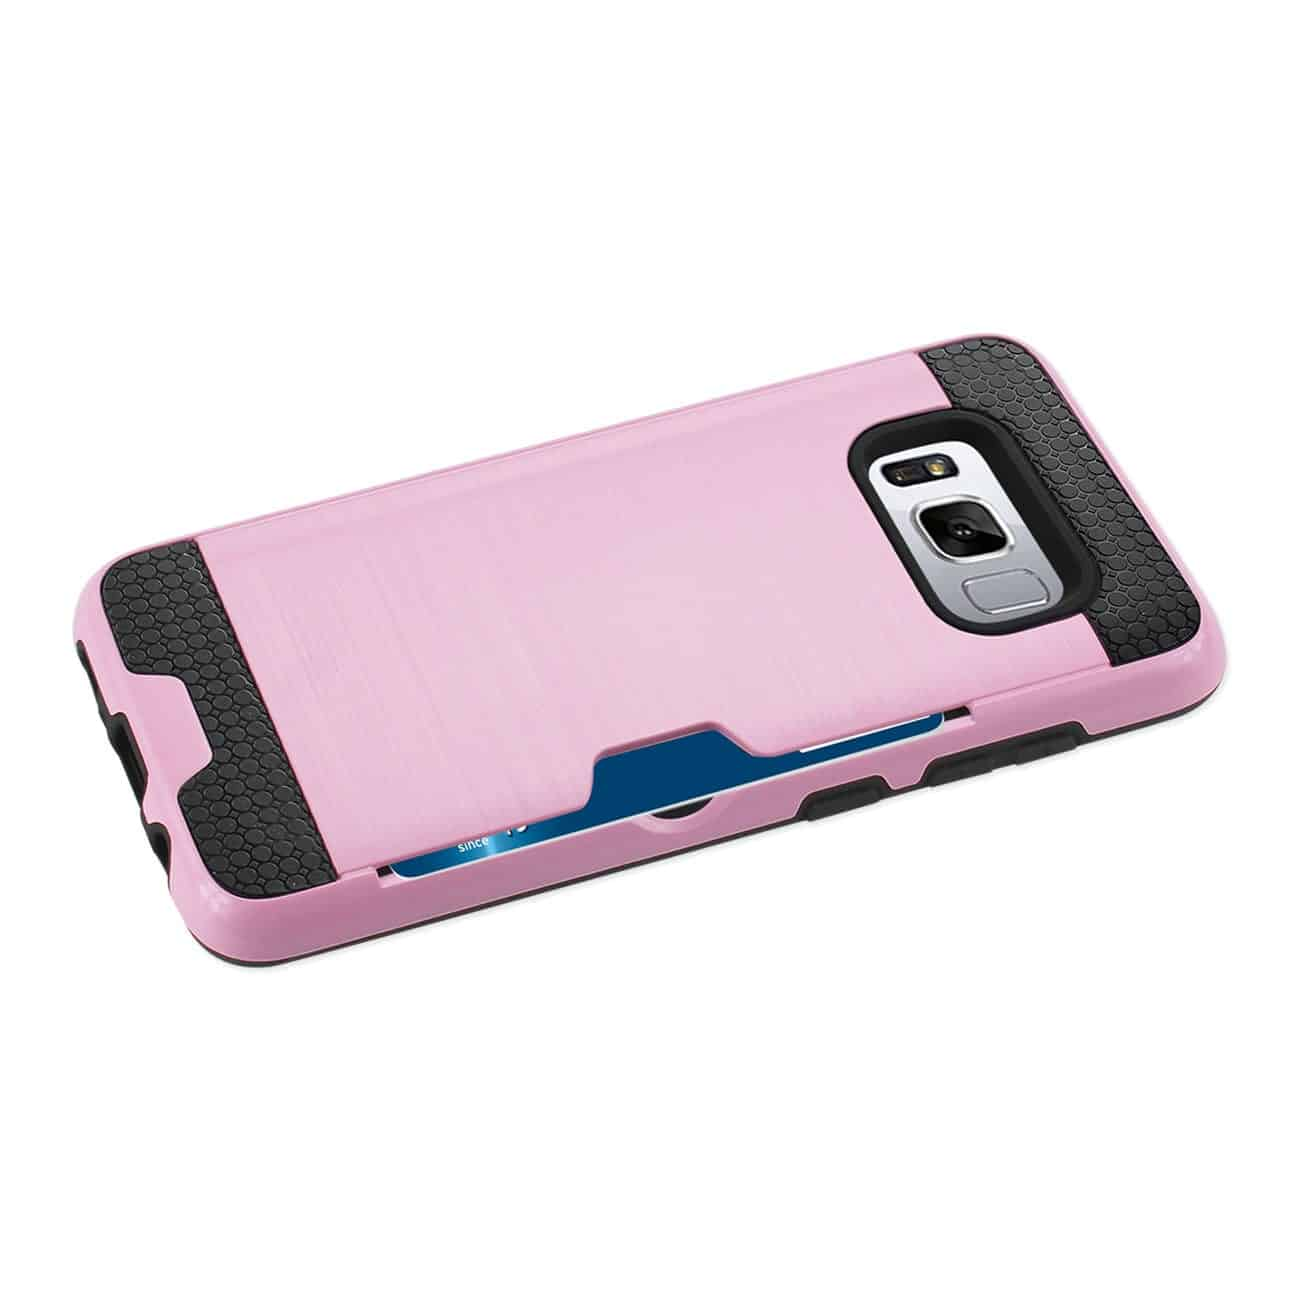 SAMSUNG GALAXY S8/ SM SLIM ARMOR HYBRID CASE WITH CARD HOLDER IN PINK